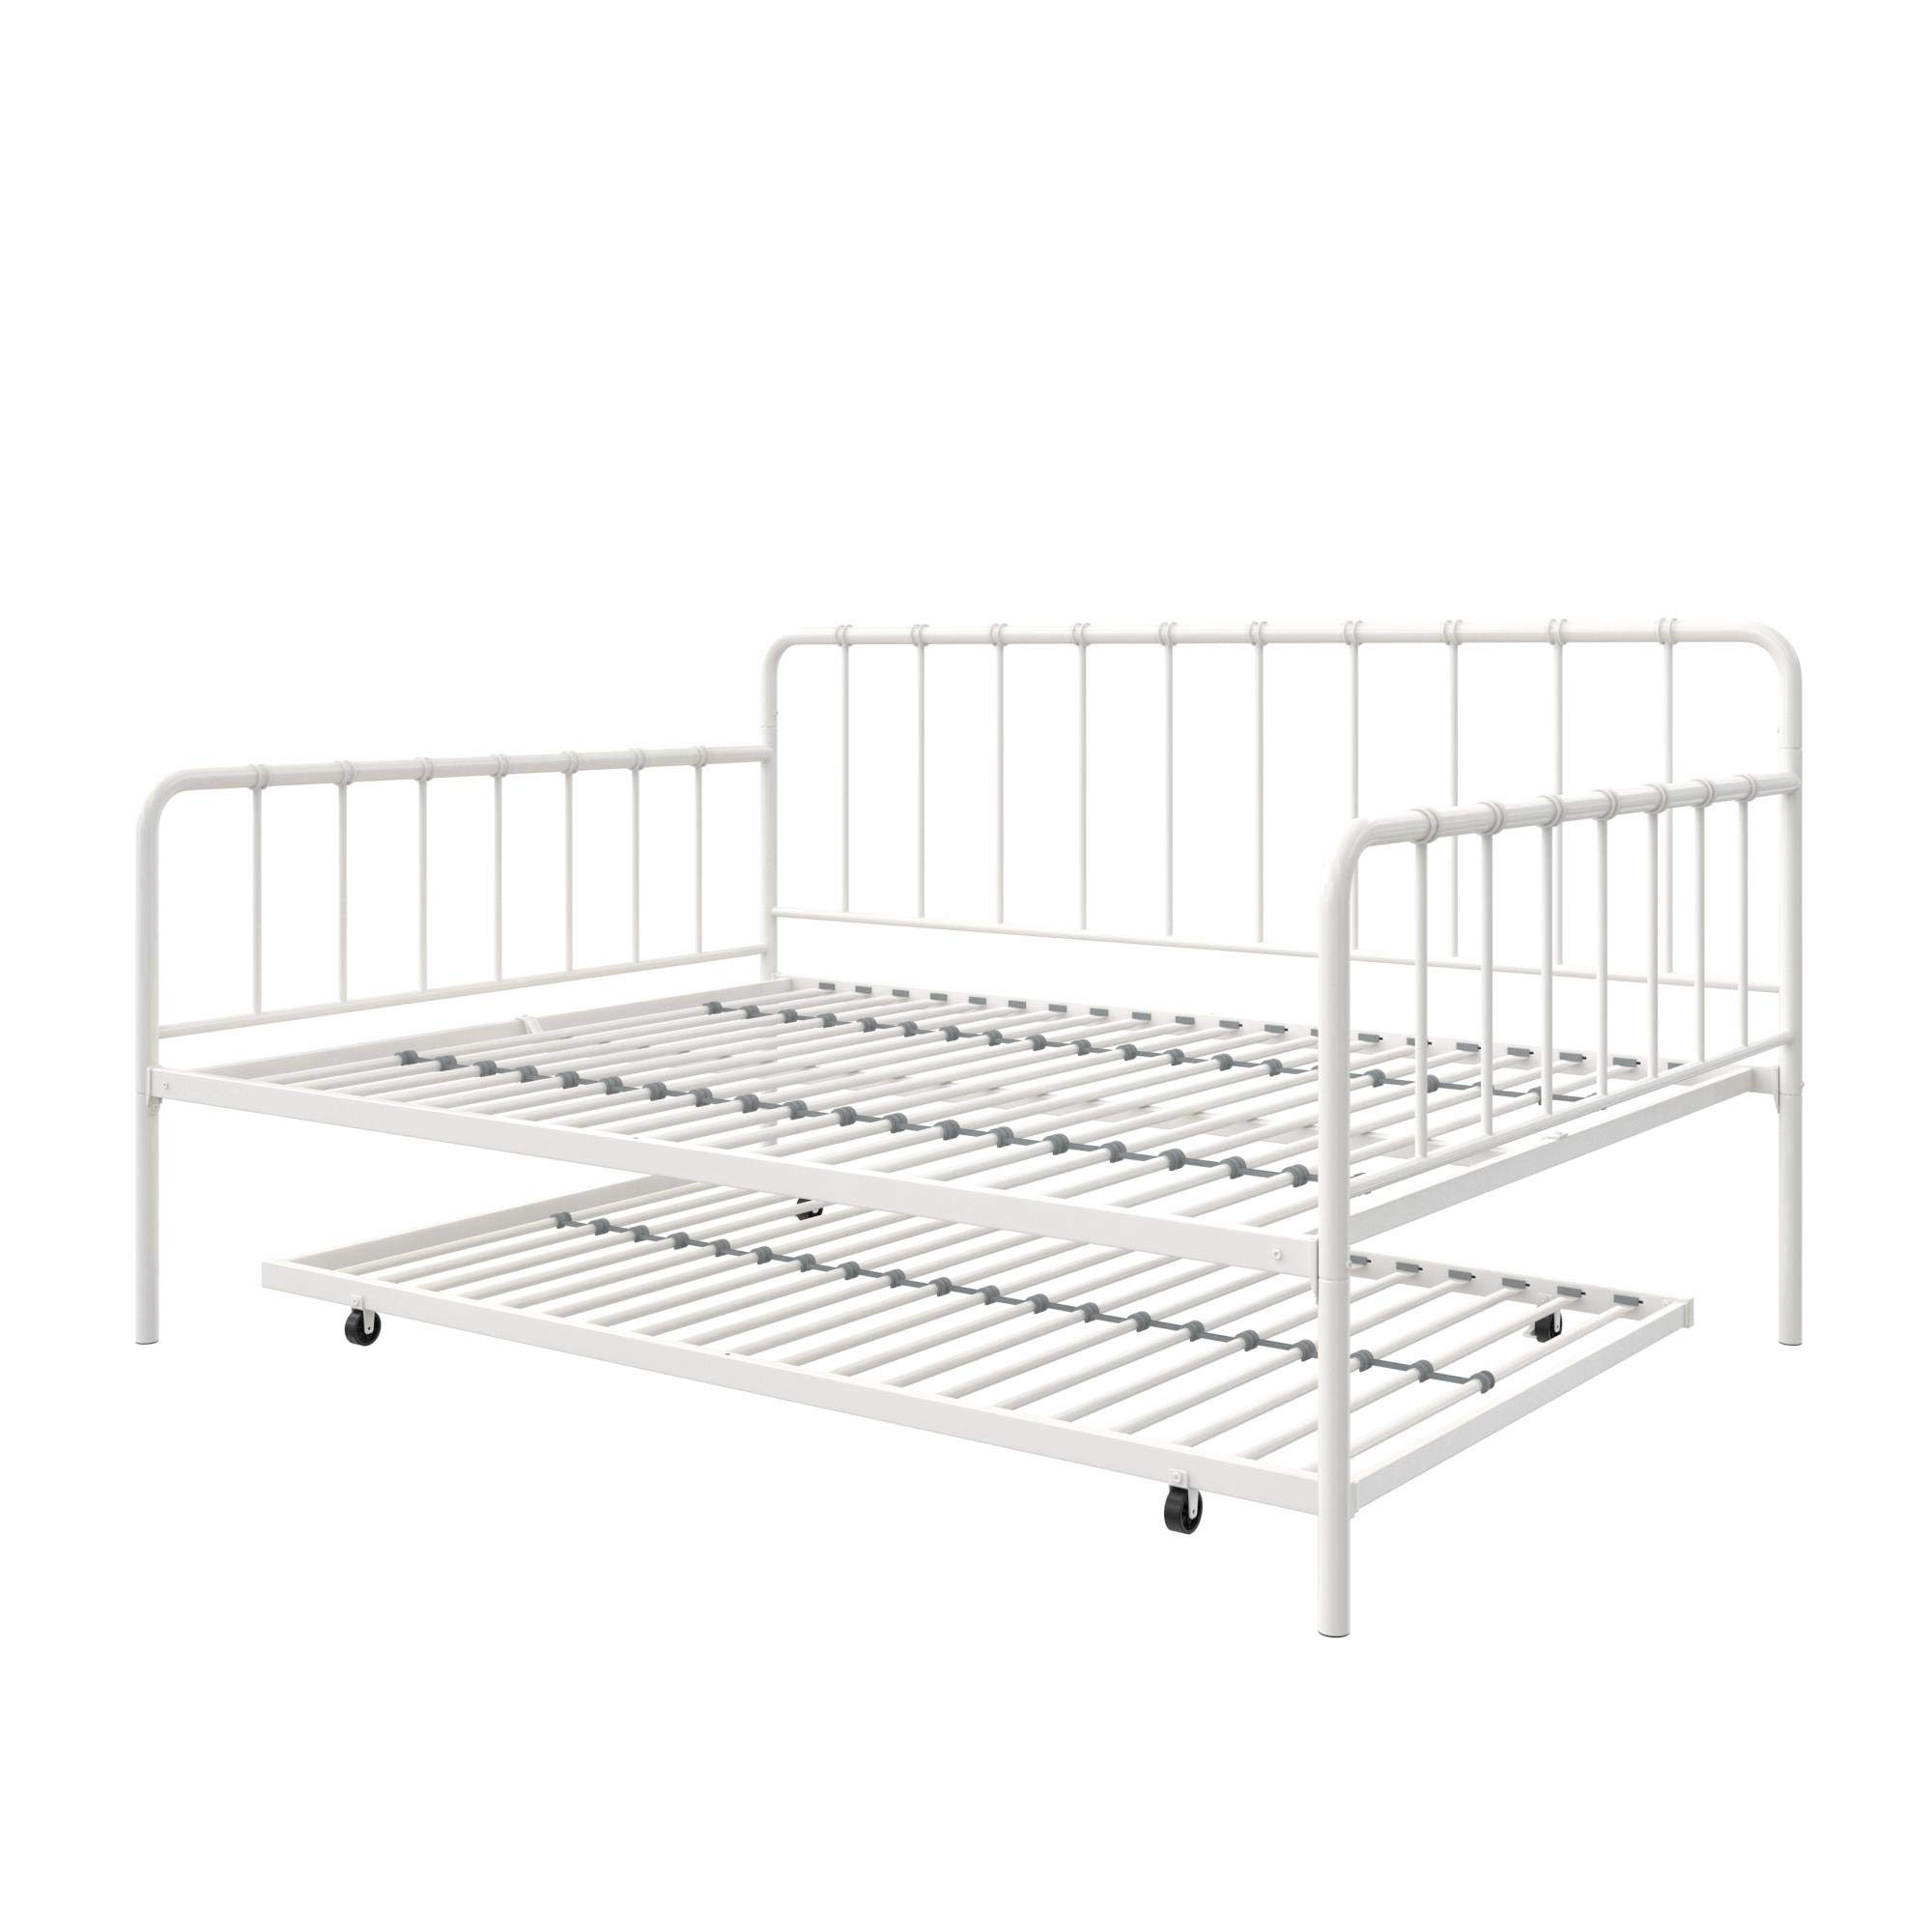 LikeHome Day bed Full Daybed, White